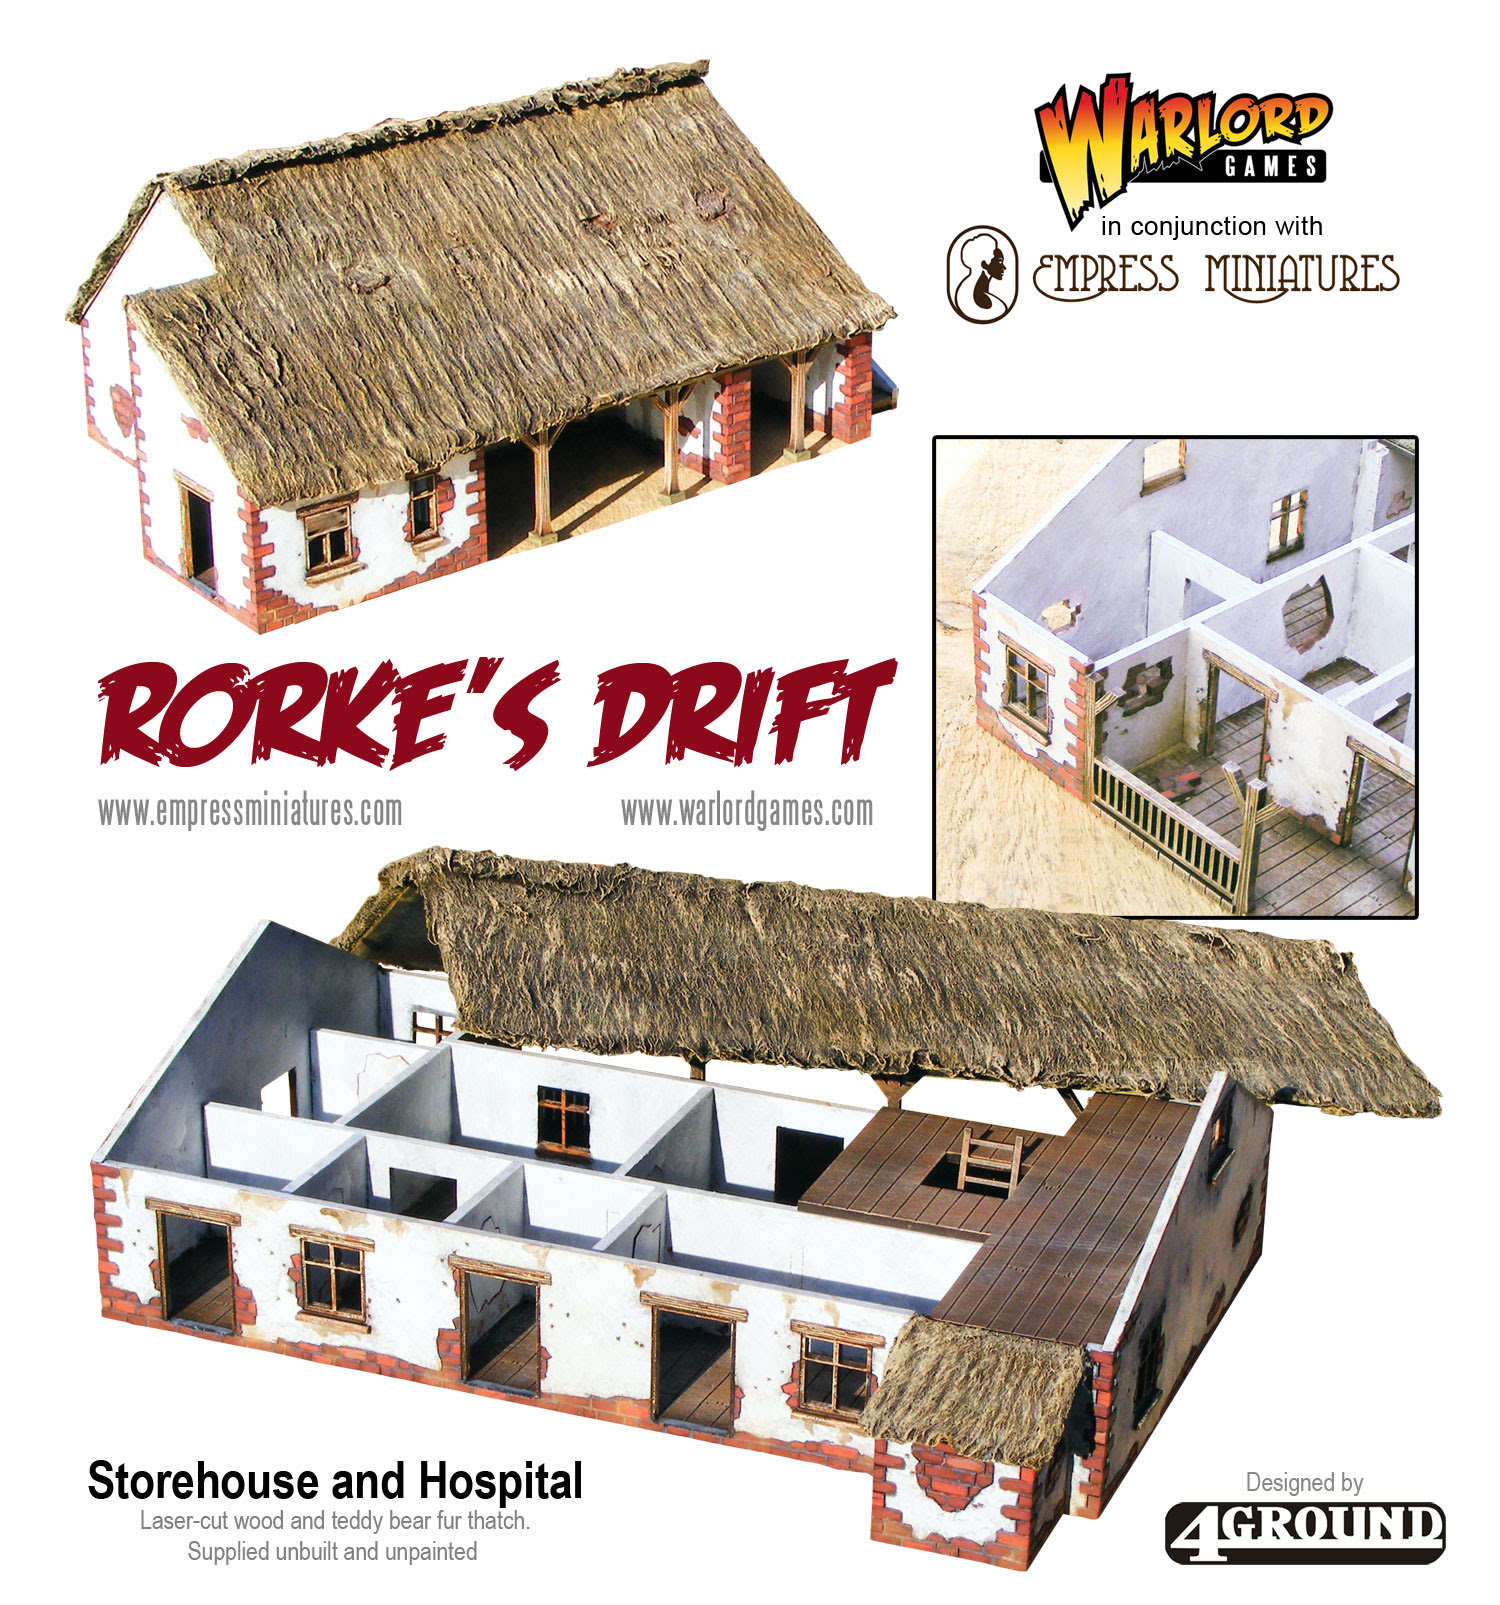 http://www.warlordgames.com/wp-content/uploads/2011/10/Rorkes-Drift-preview.jpg